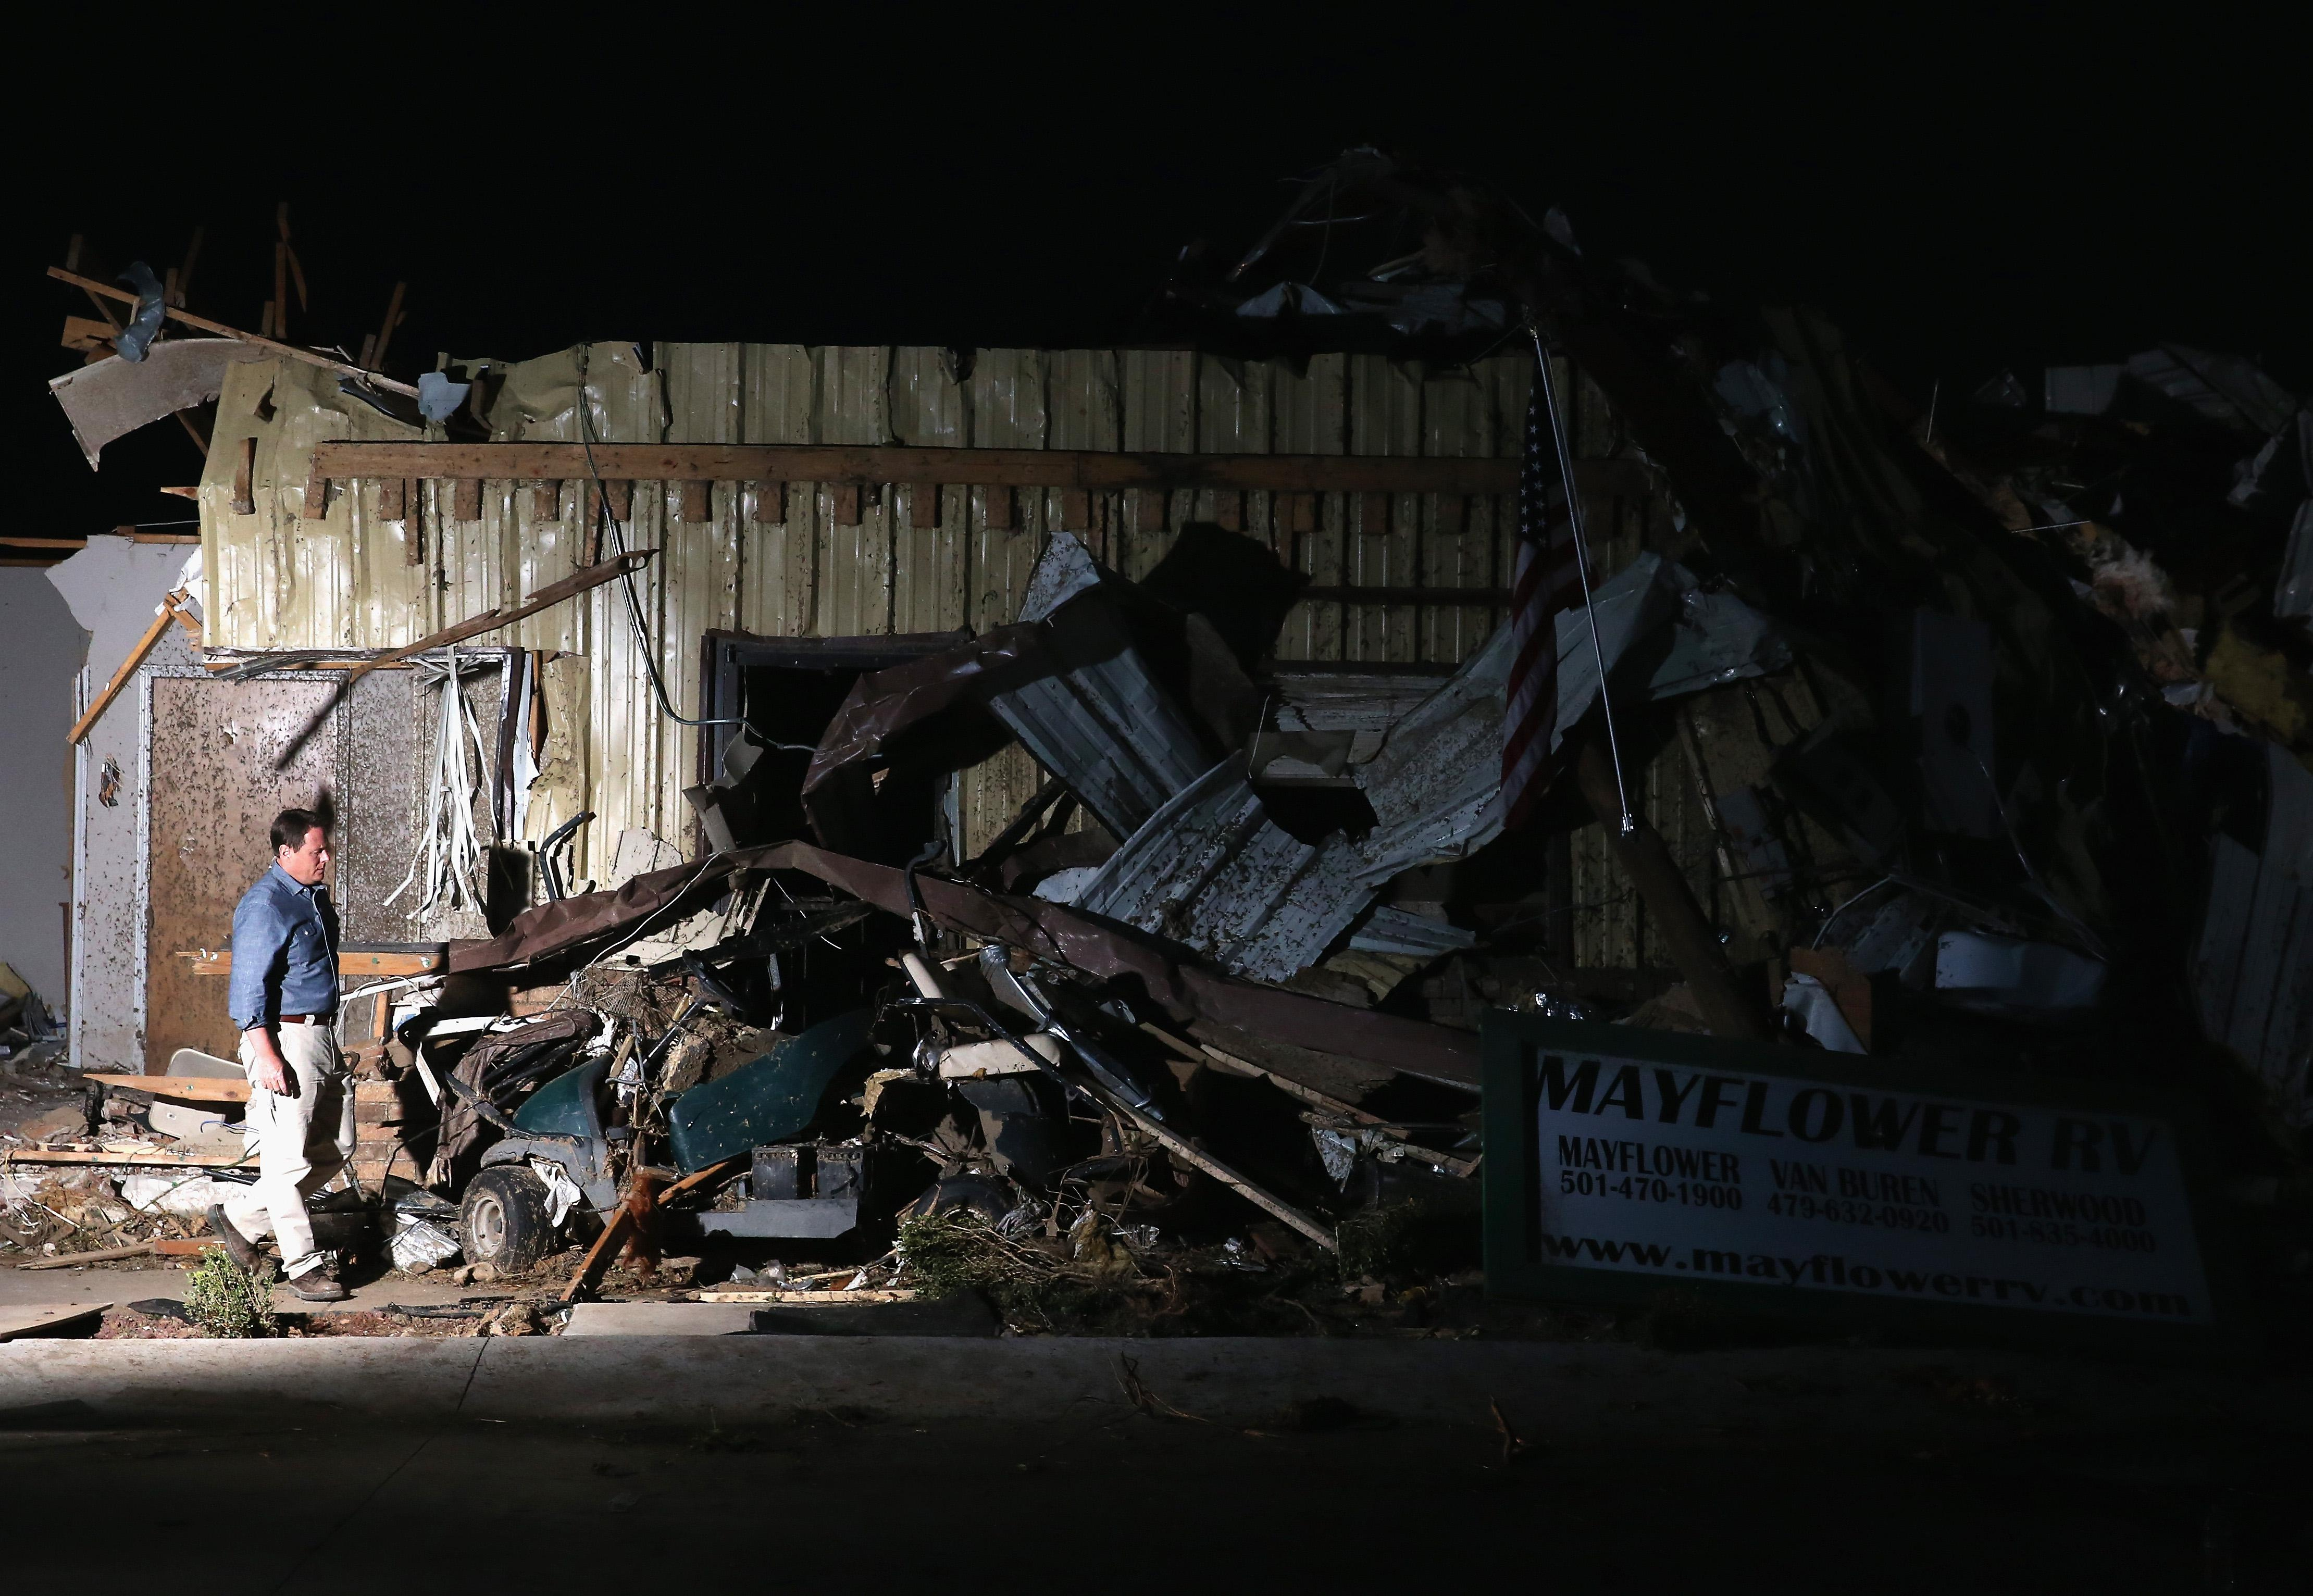 Widespread Damage And Casualties After Tornadoes Rip Through Arkansas